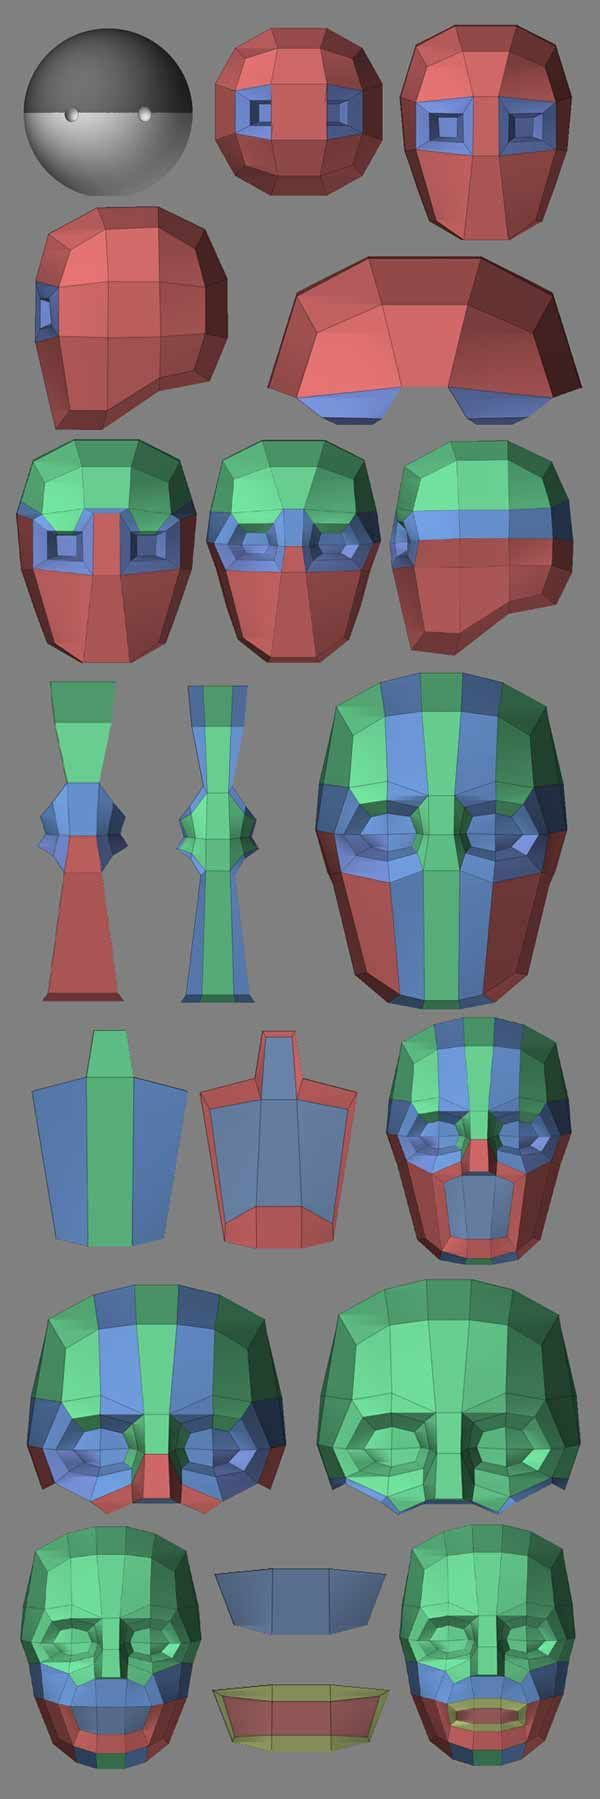 Handlebar Modeling Workflow in ZBrushCentral (www.zbrushcentral.com/showthread.php?43333-Topology-experiment)